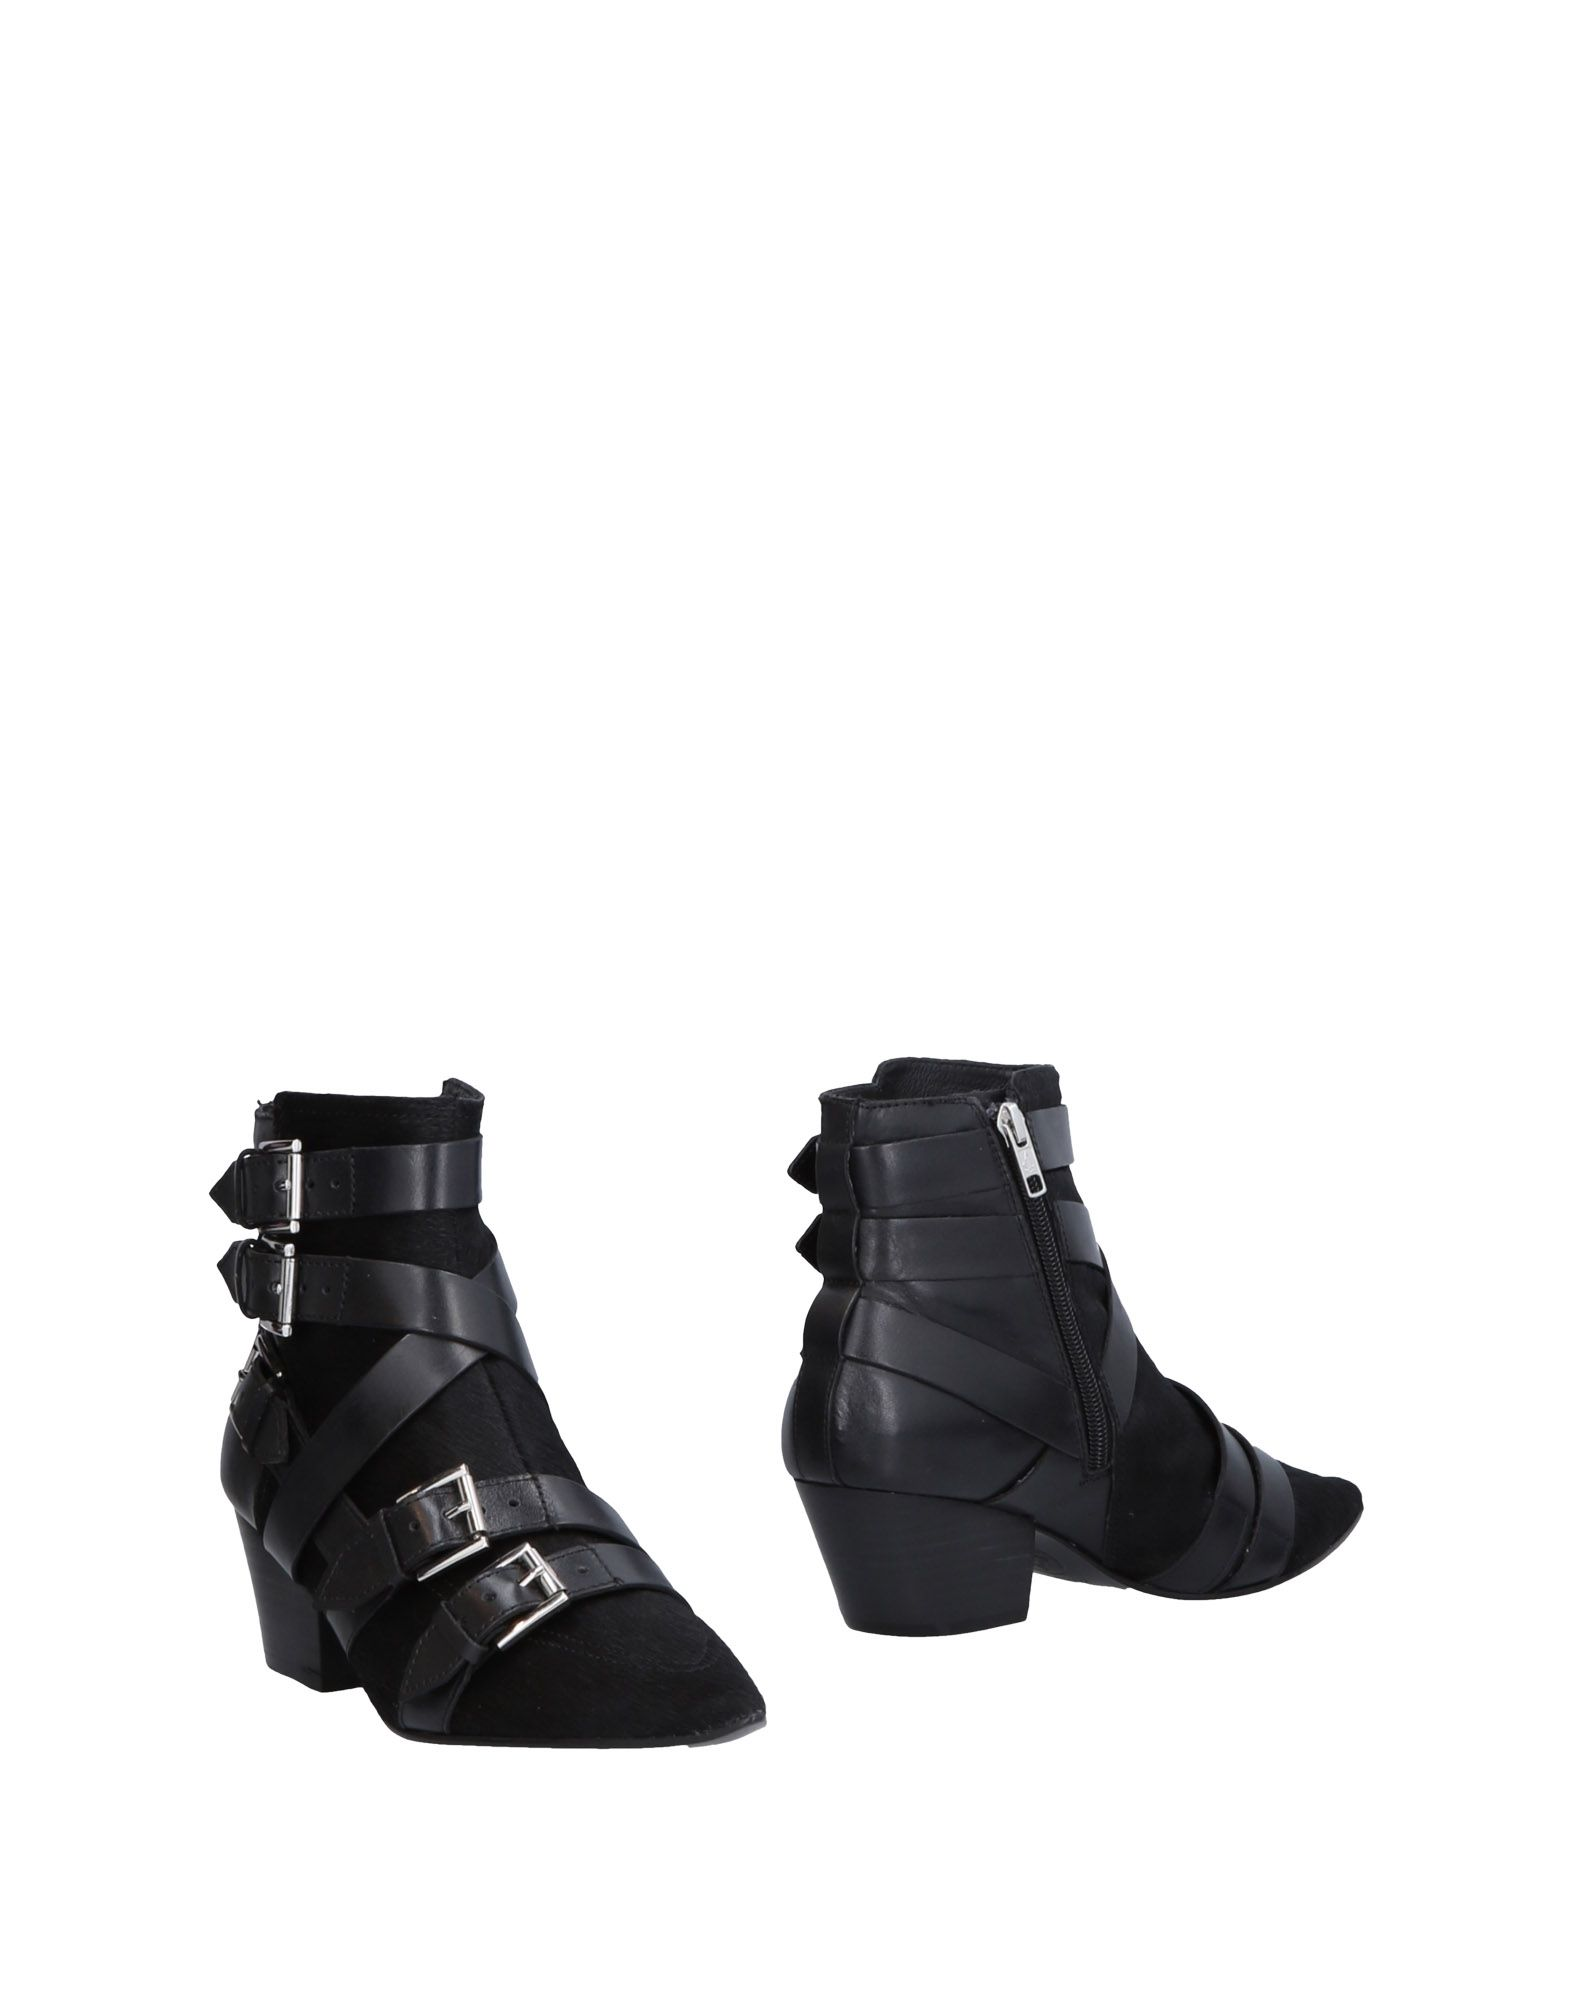 Bottine Ash Femme - Bottines Ash Noir Confortable et belle